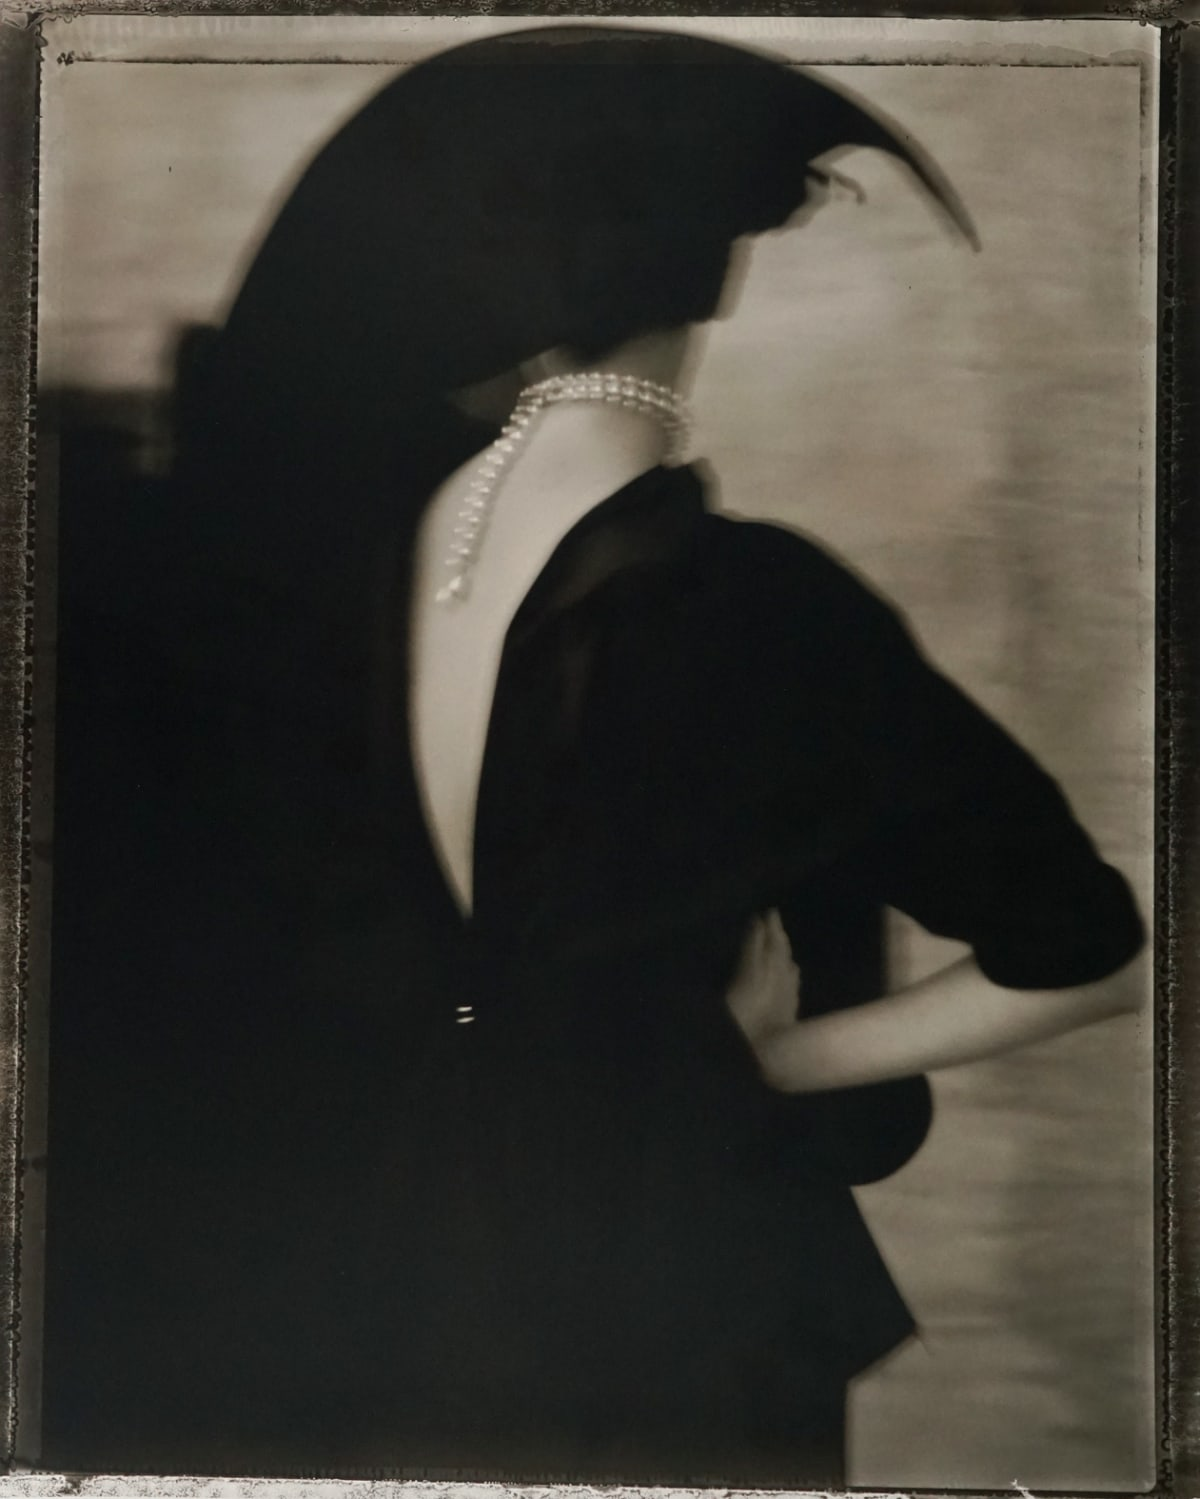 "Sarah Moon 1941L'inconnue, 2011 Signed, titled, dated, numbered on verso Gelatin Silver Print Image - 17.5""x21.75"", Paper - 20""x24"", Matted - 24""x30"" Edition 9 of 20"